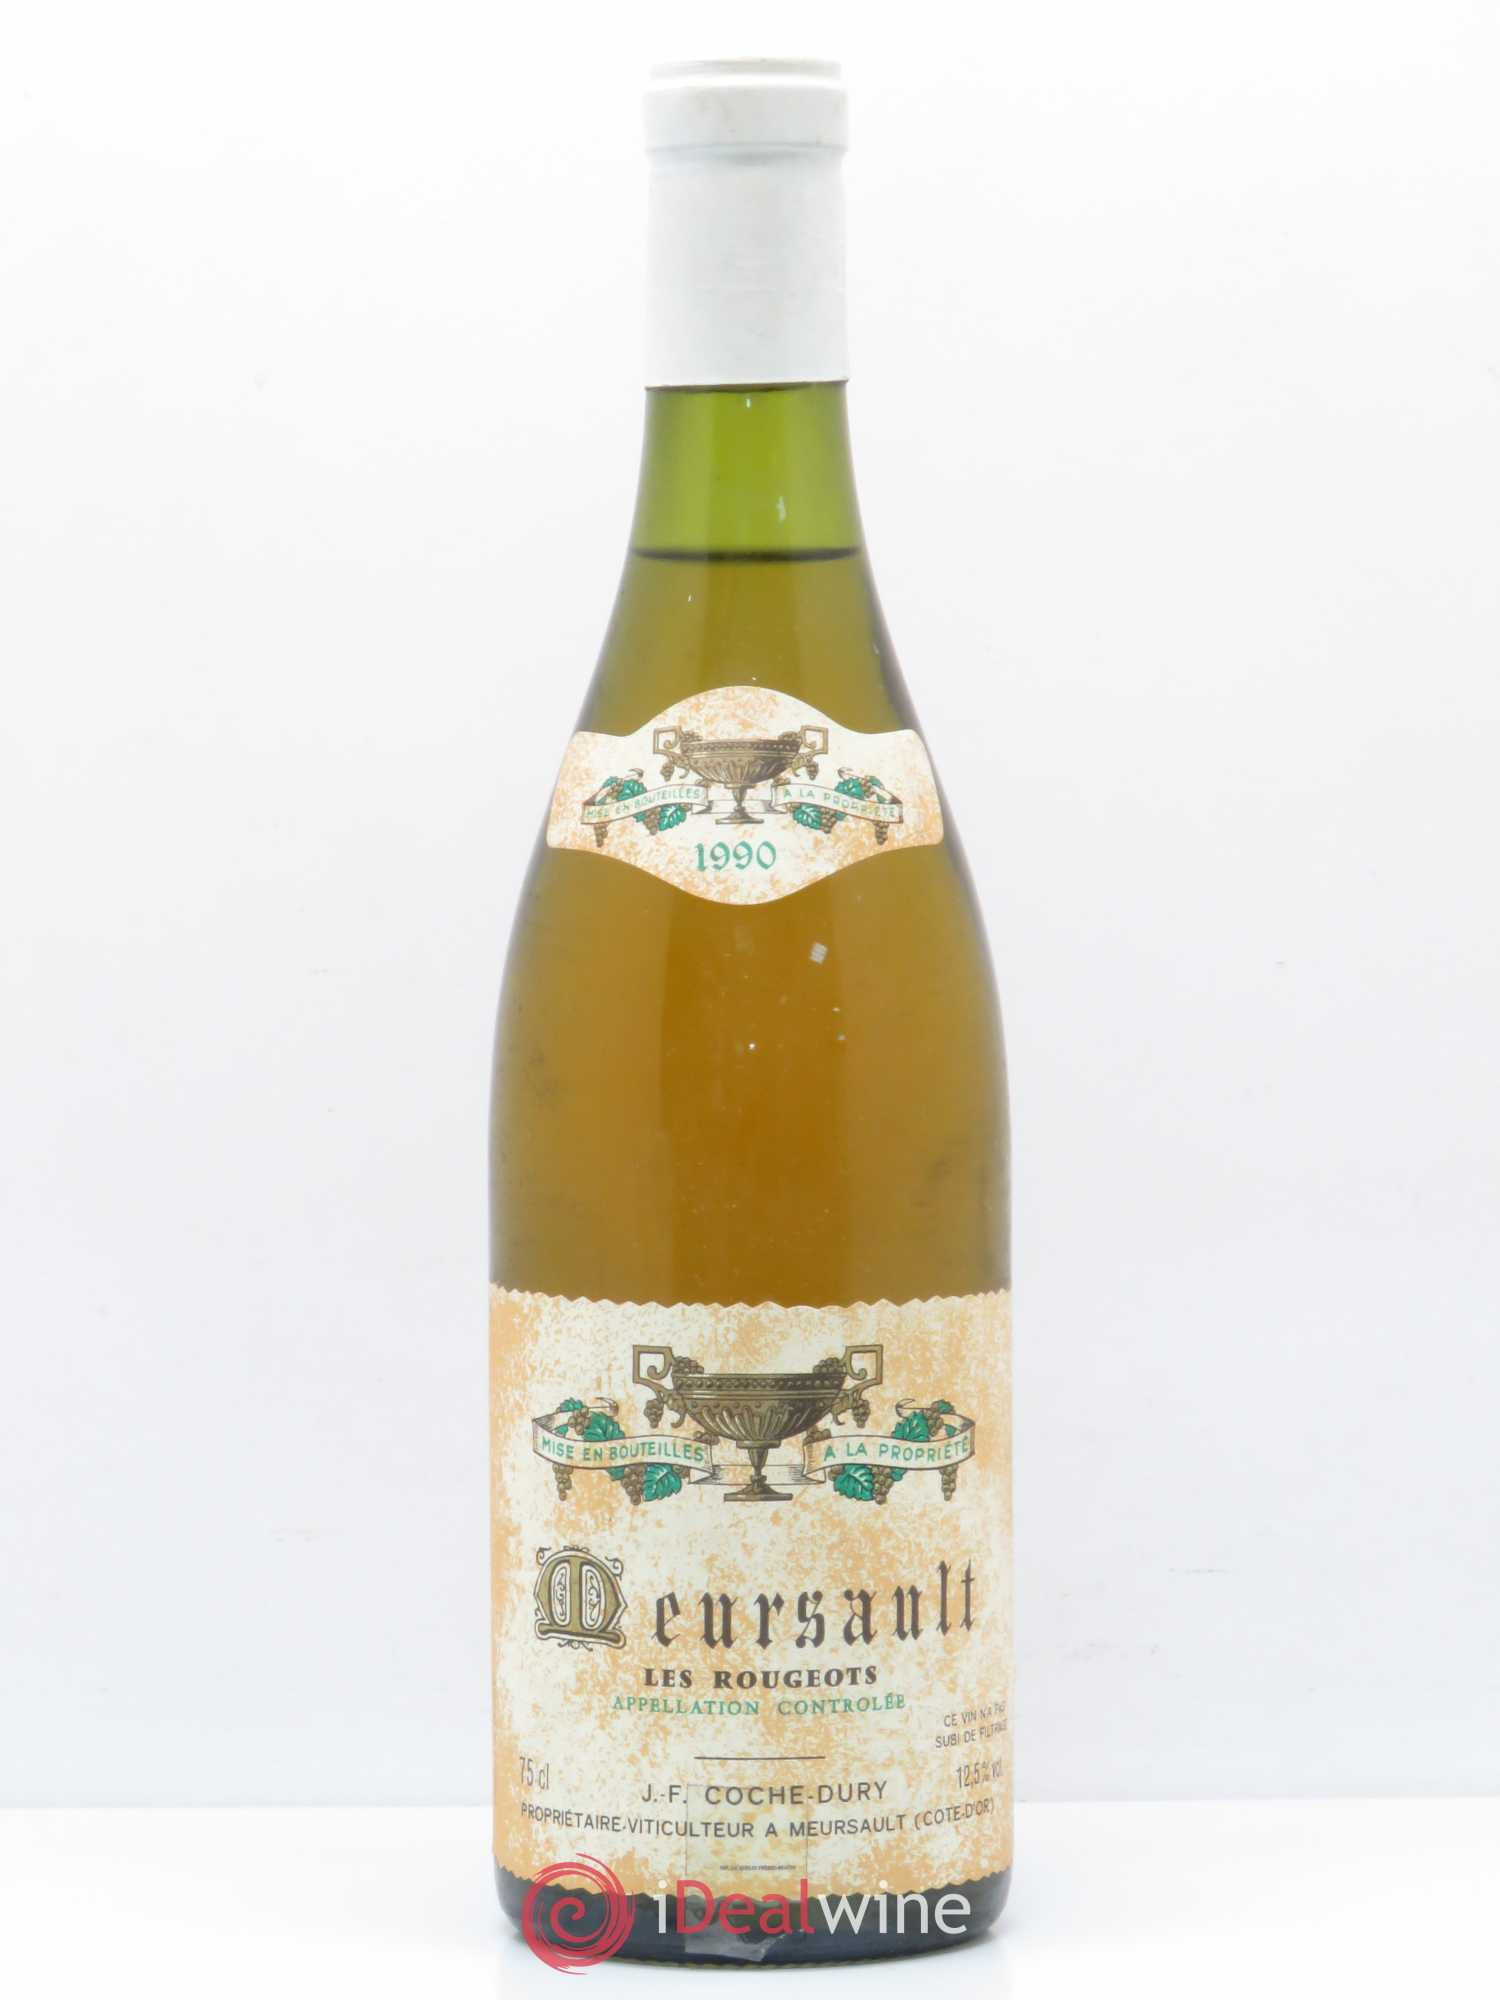 Meursault Les Rougeots Coche Dury (Domaine)  1990 - Lot of 1 Bottle